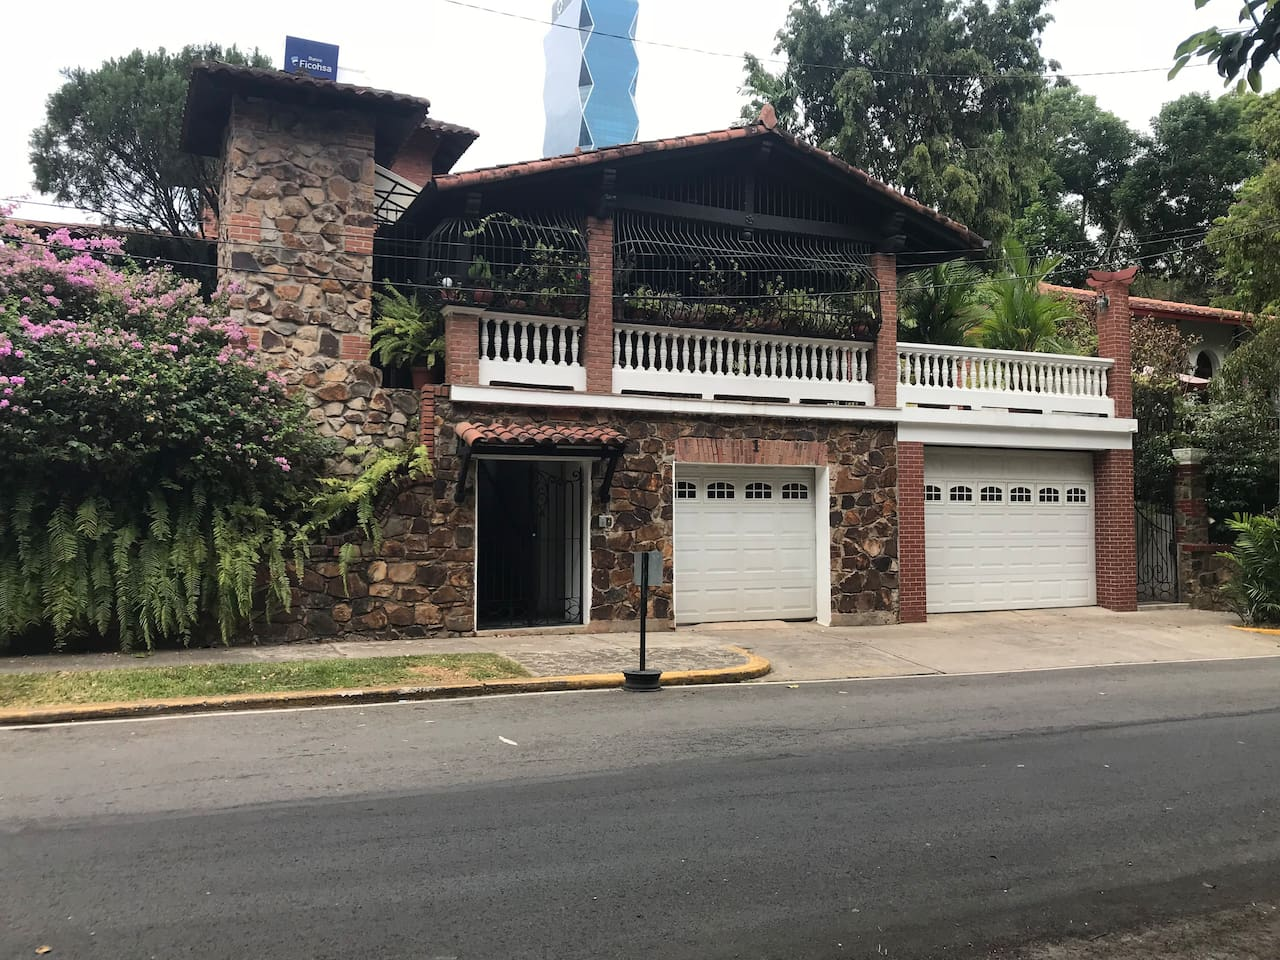 HOUSE # 1, Bella Vista:  a very special colonial residence, typical of the Bella Vista Style, very near supermarket, restaurants and public transportation.